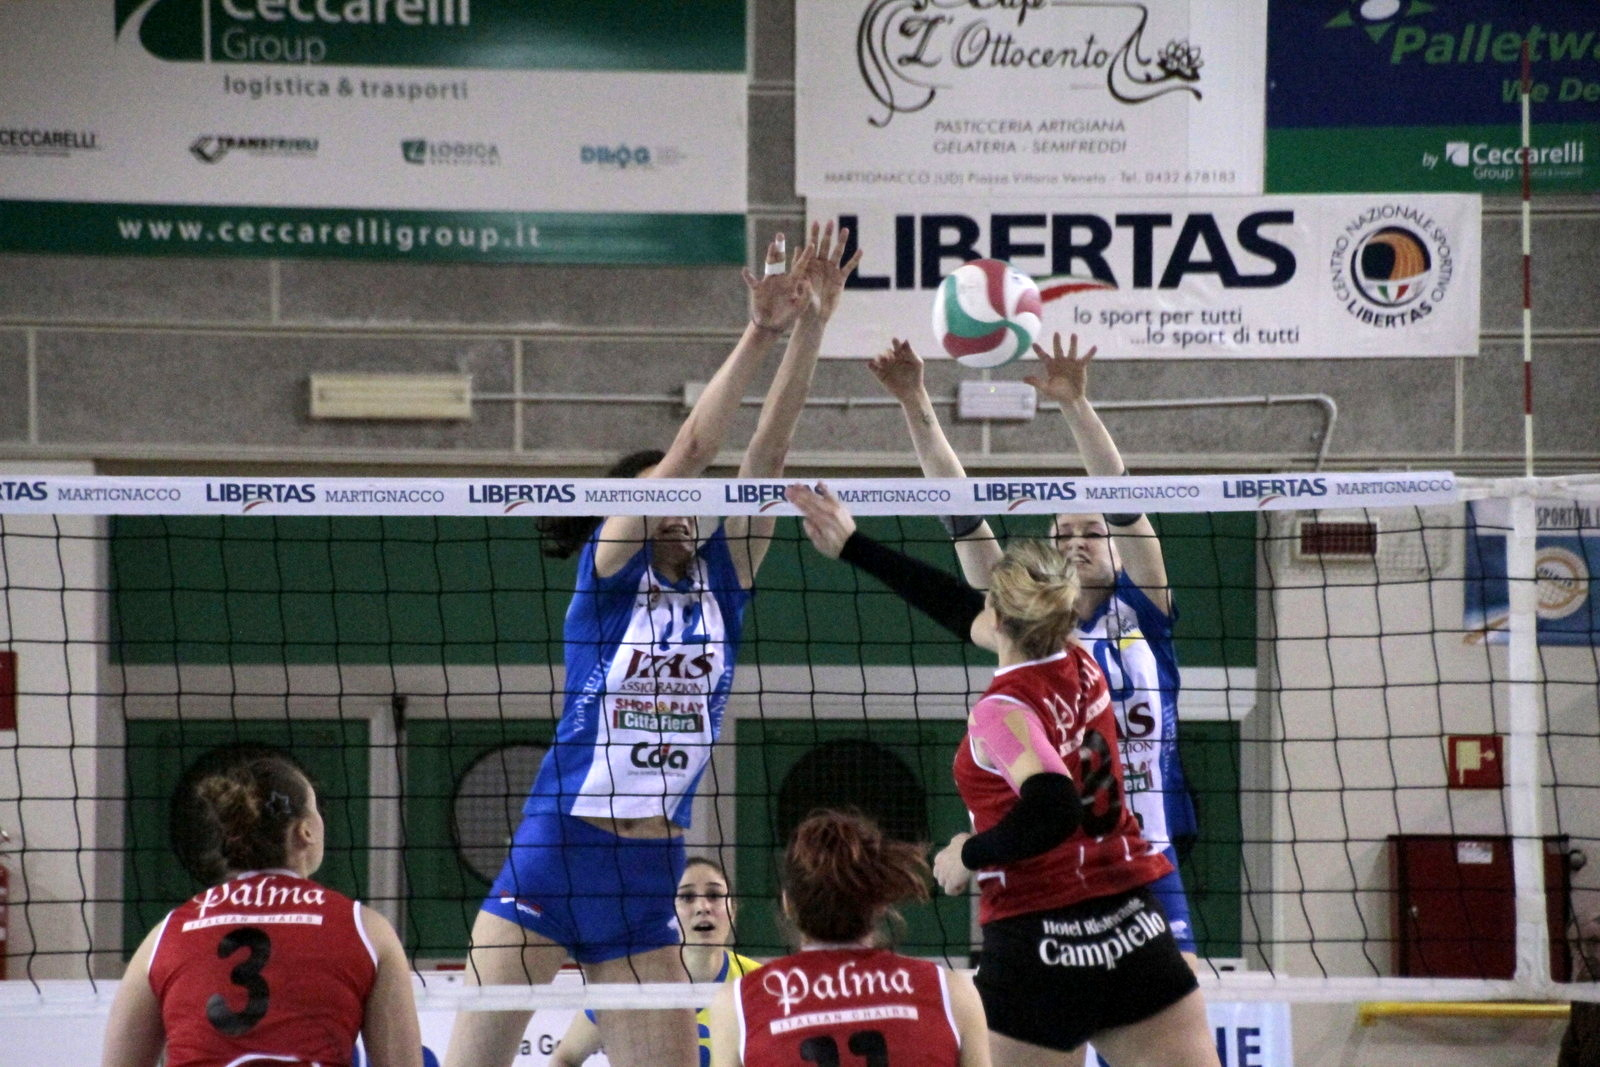 Itas Martignacco vs Est Volley